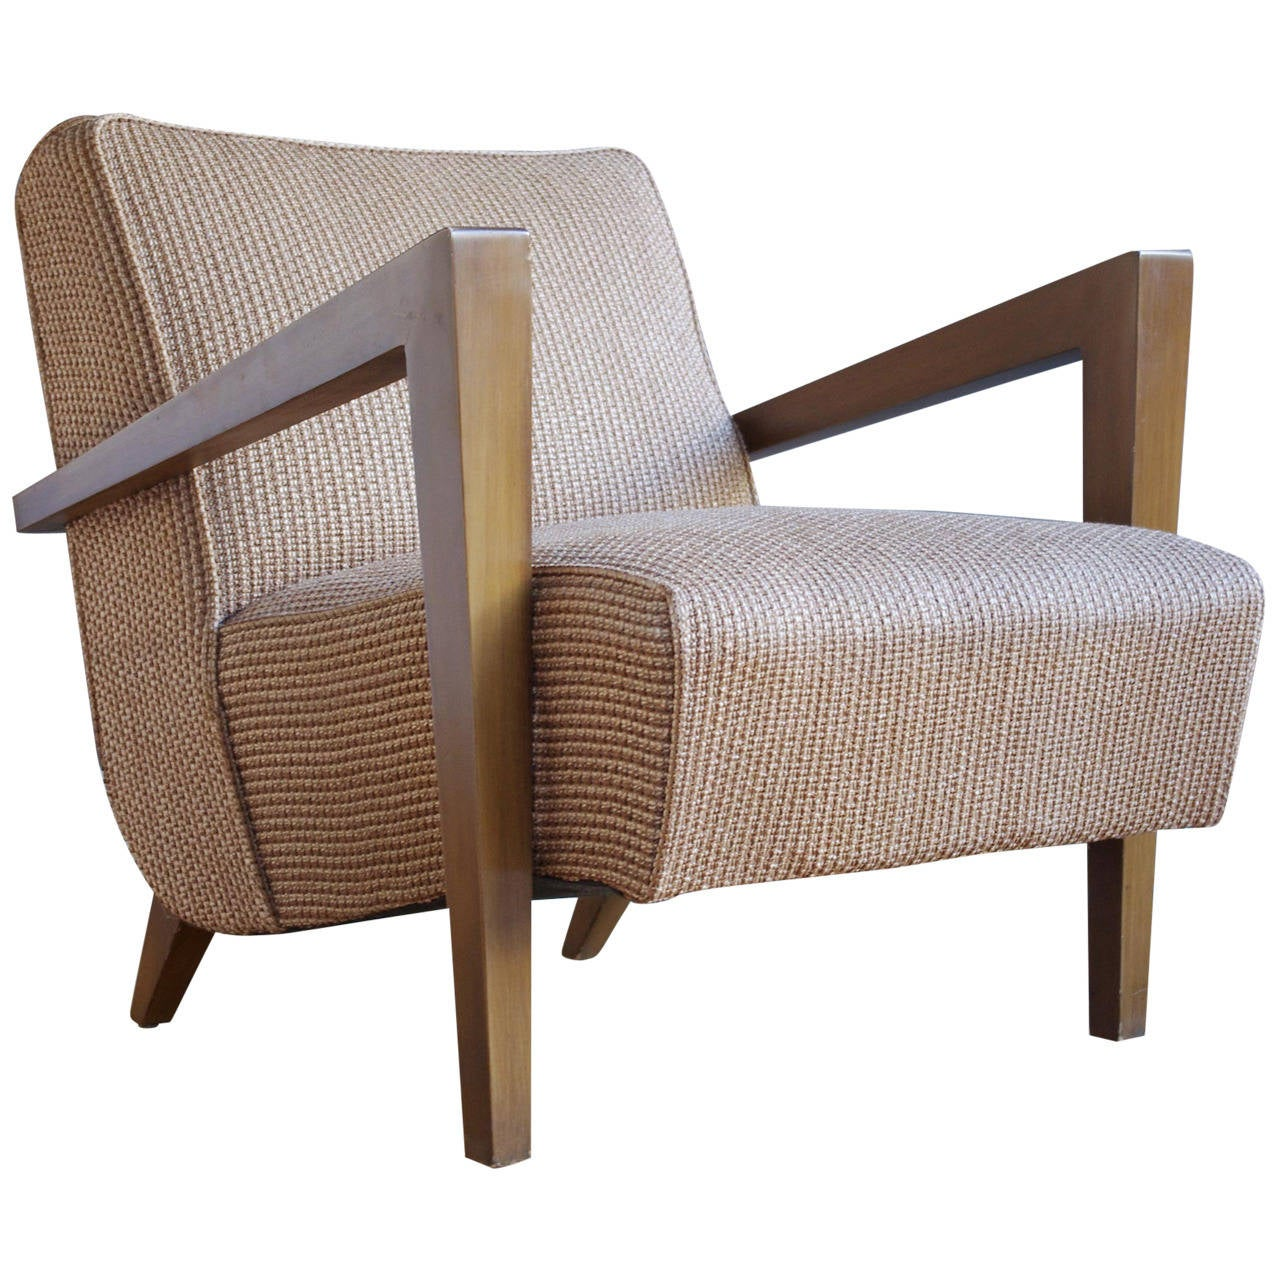 this sculptural mid century modern lounge chair is no longer available